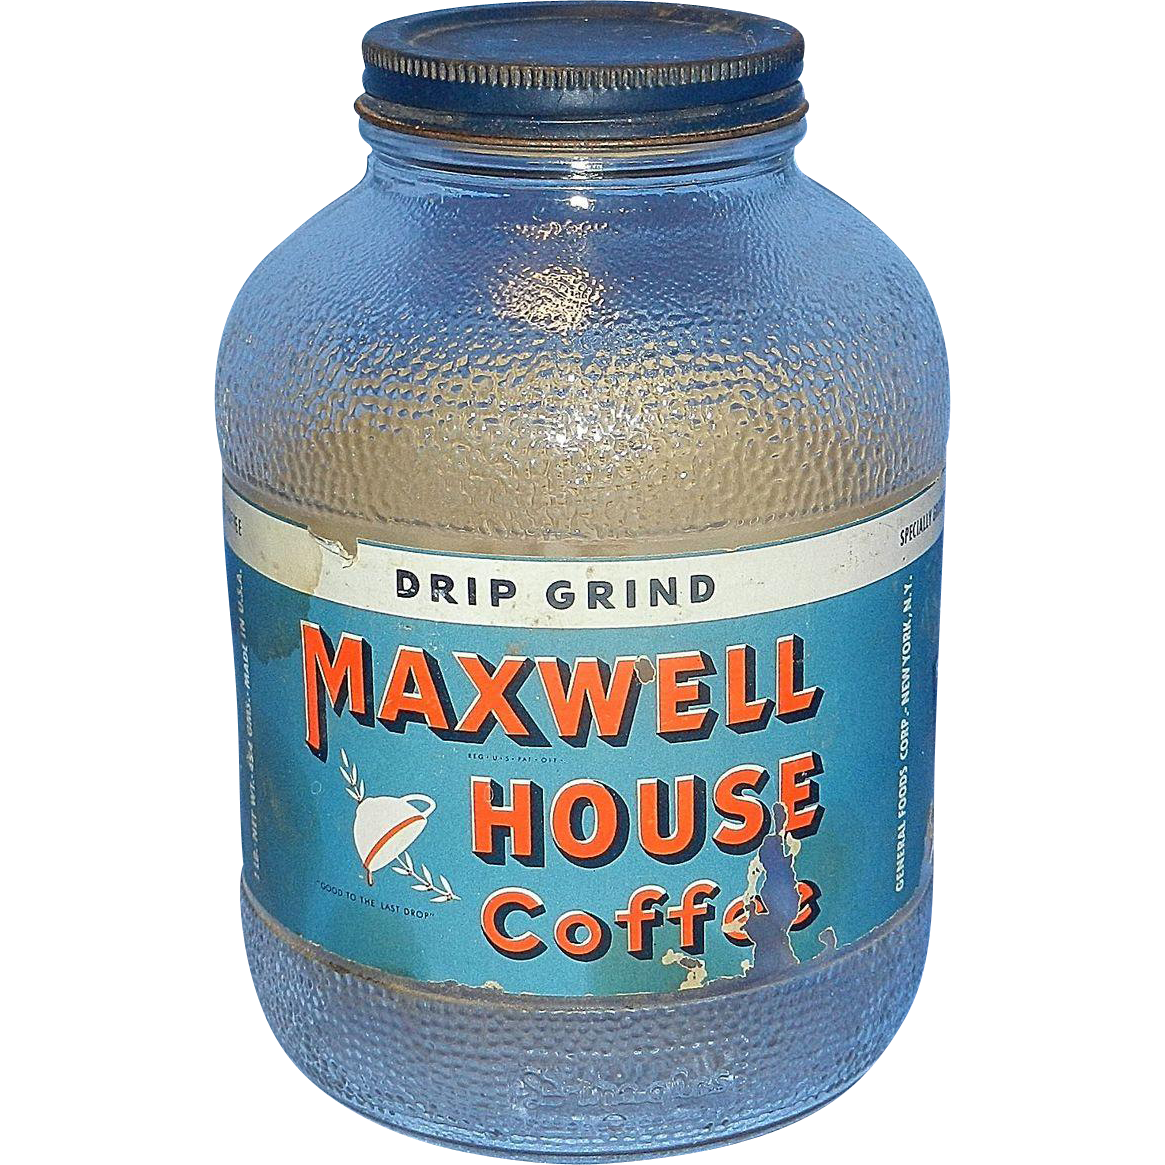 Vintage Maxwell House Coffee Jar With Original Label From